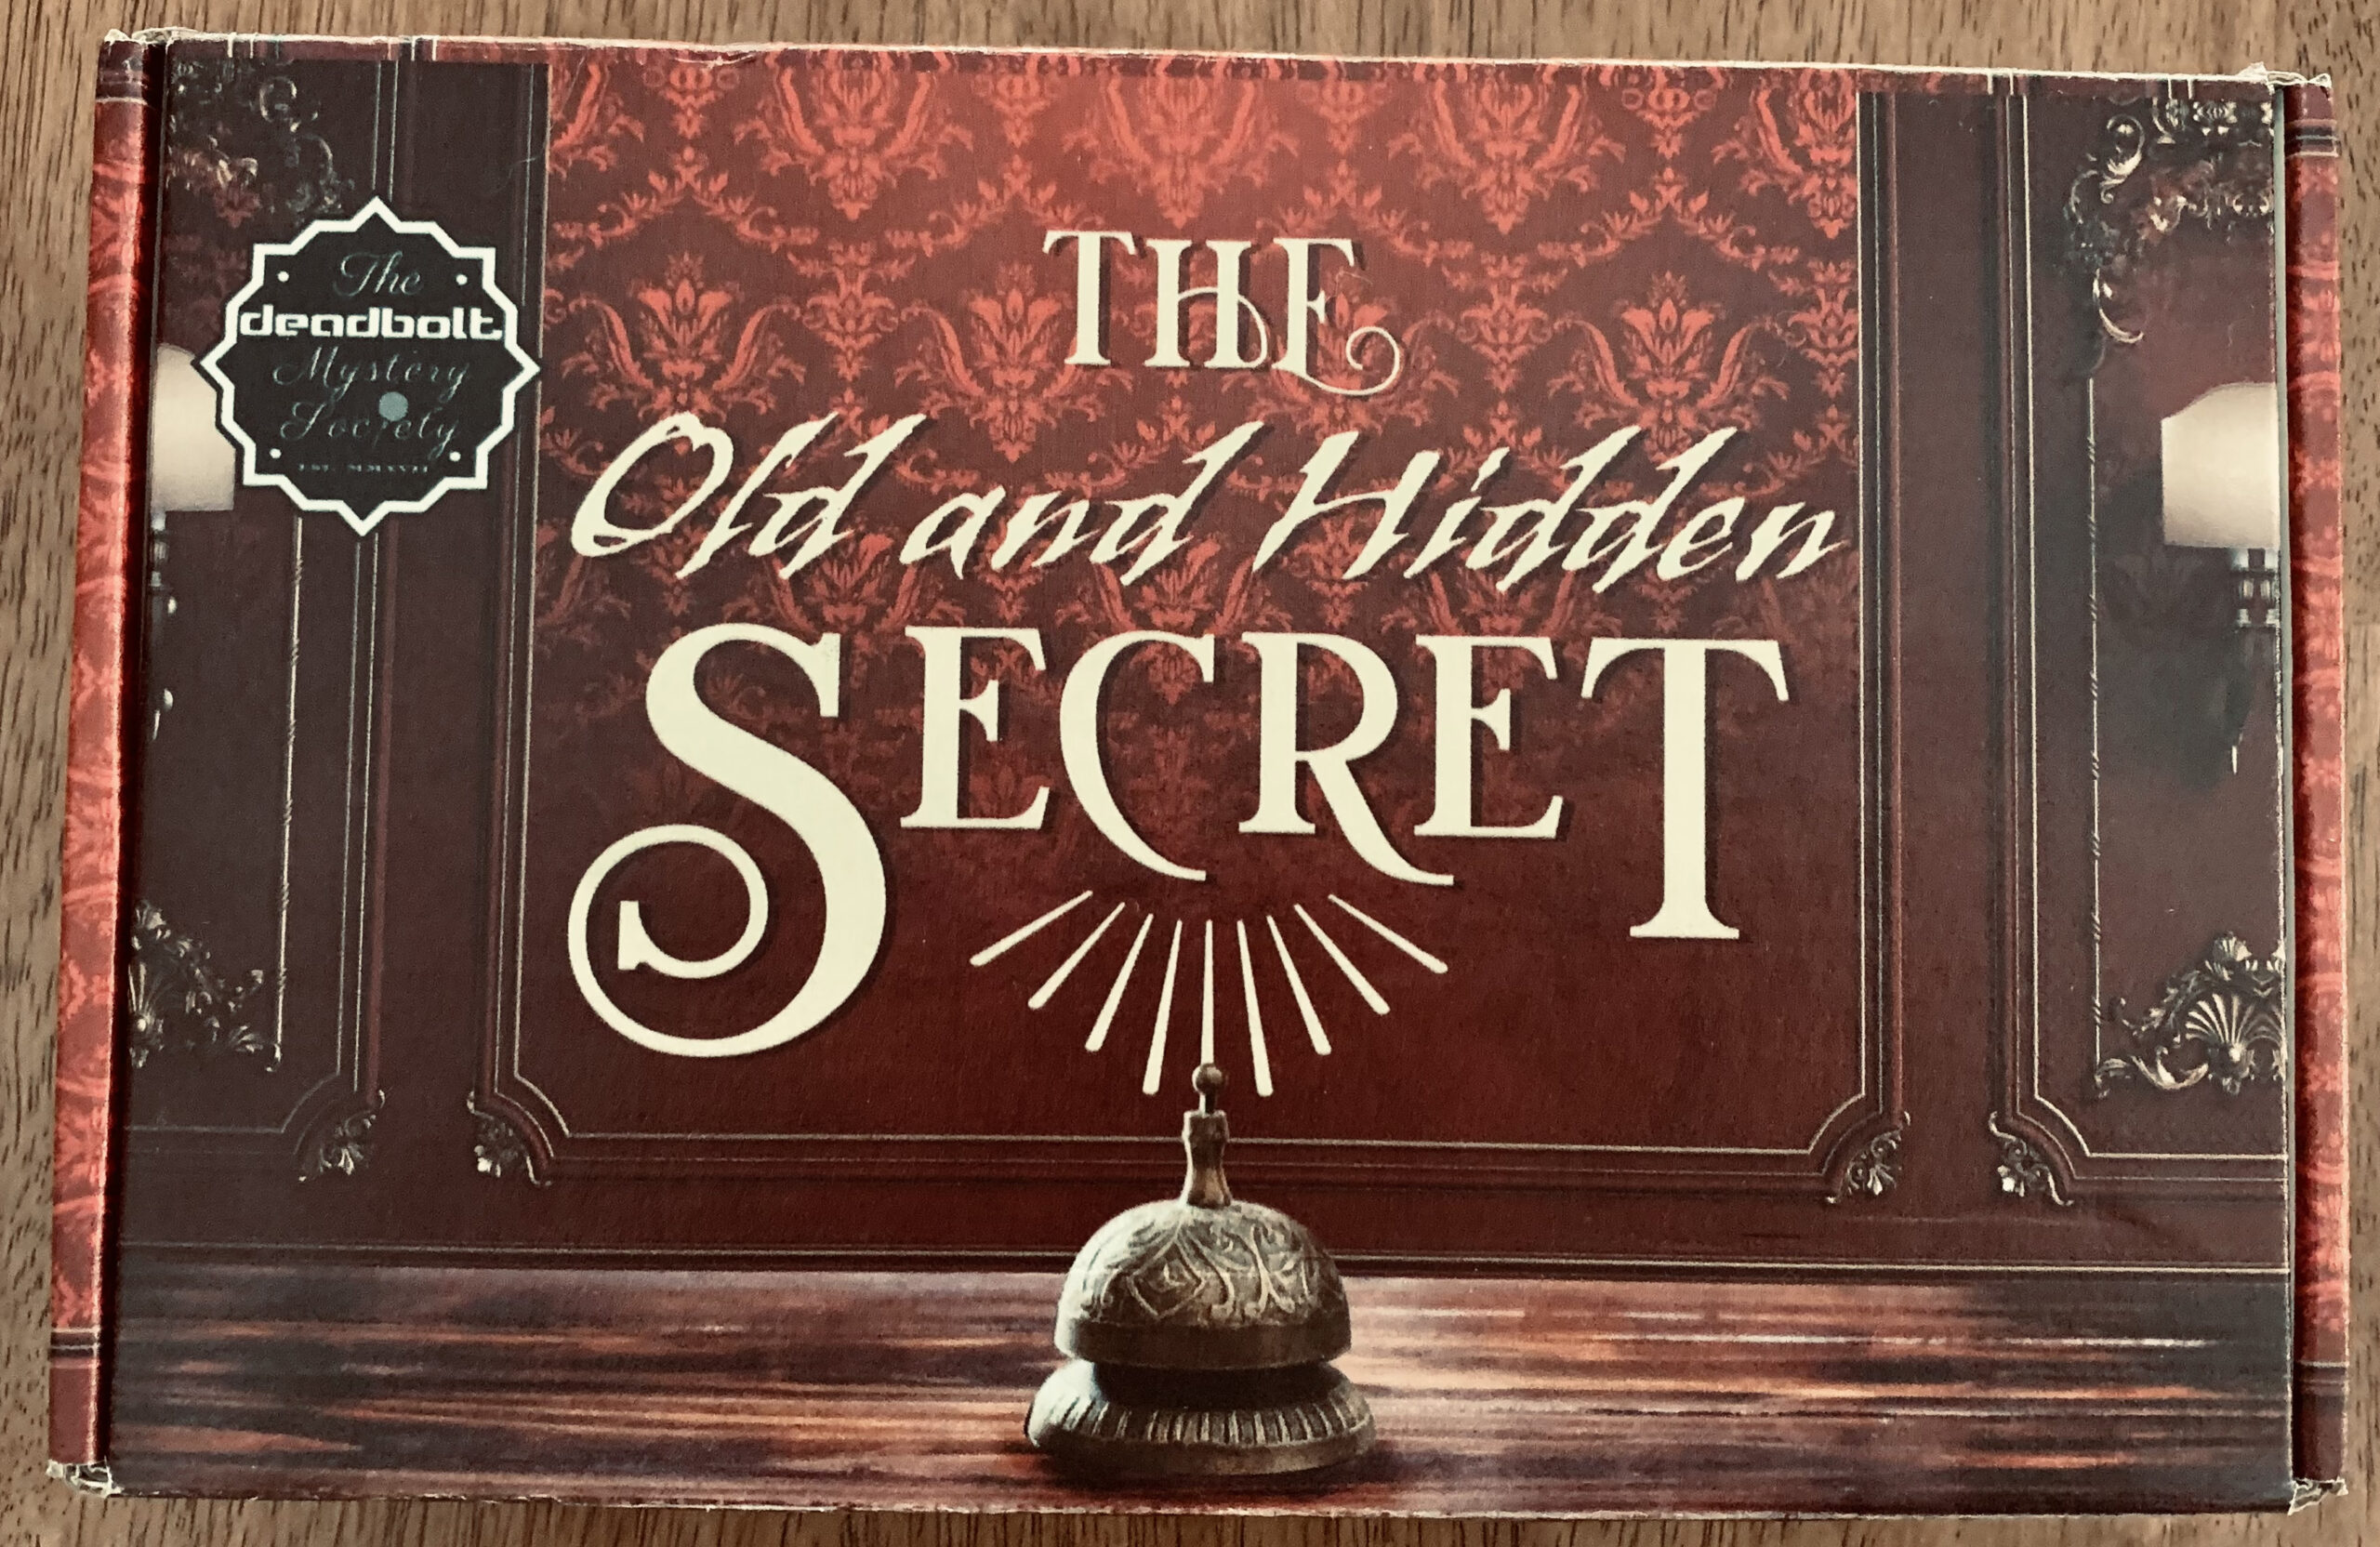 The Old and Hidden Secret Review